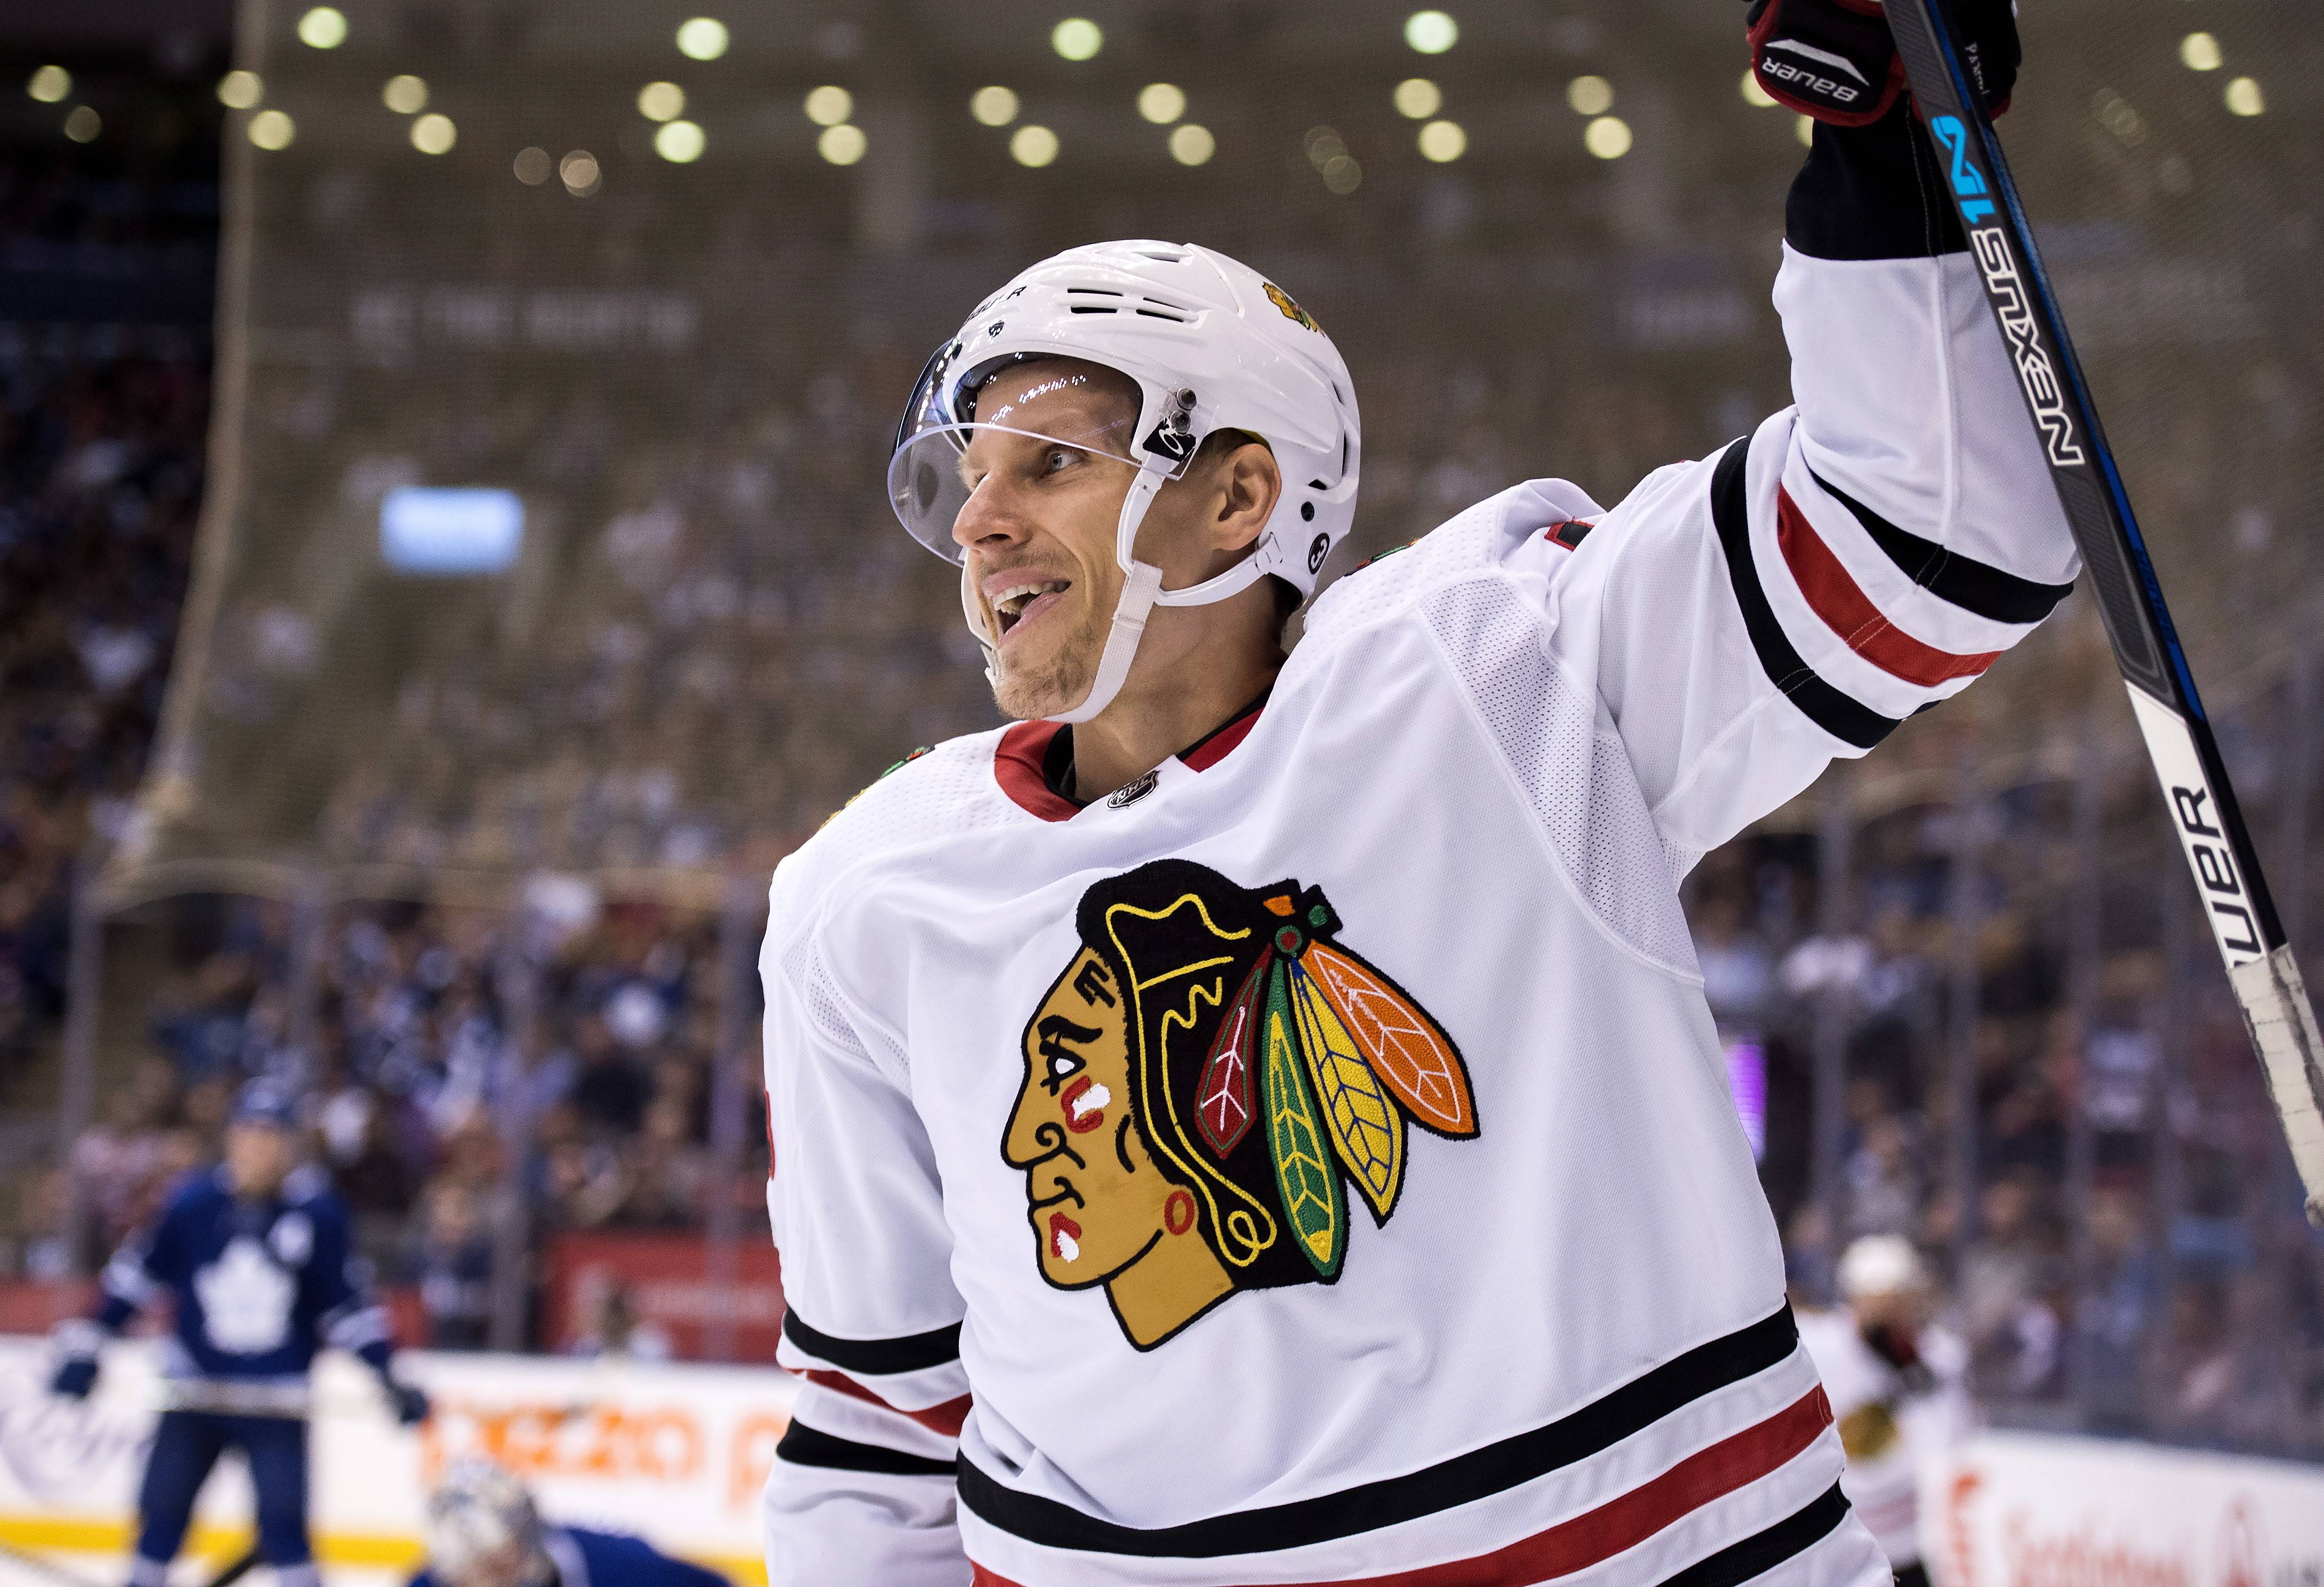 Five reasons behind the Blackhawks' hot start